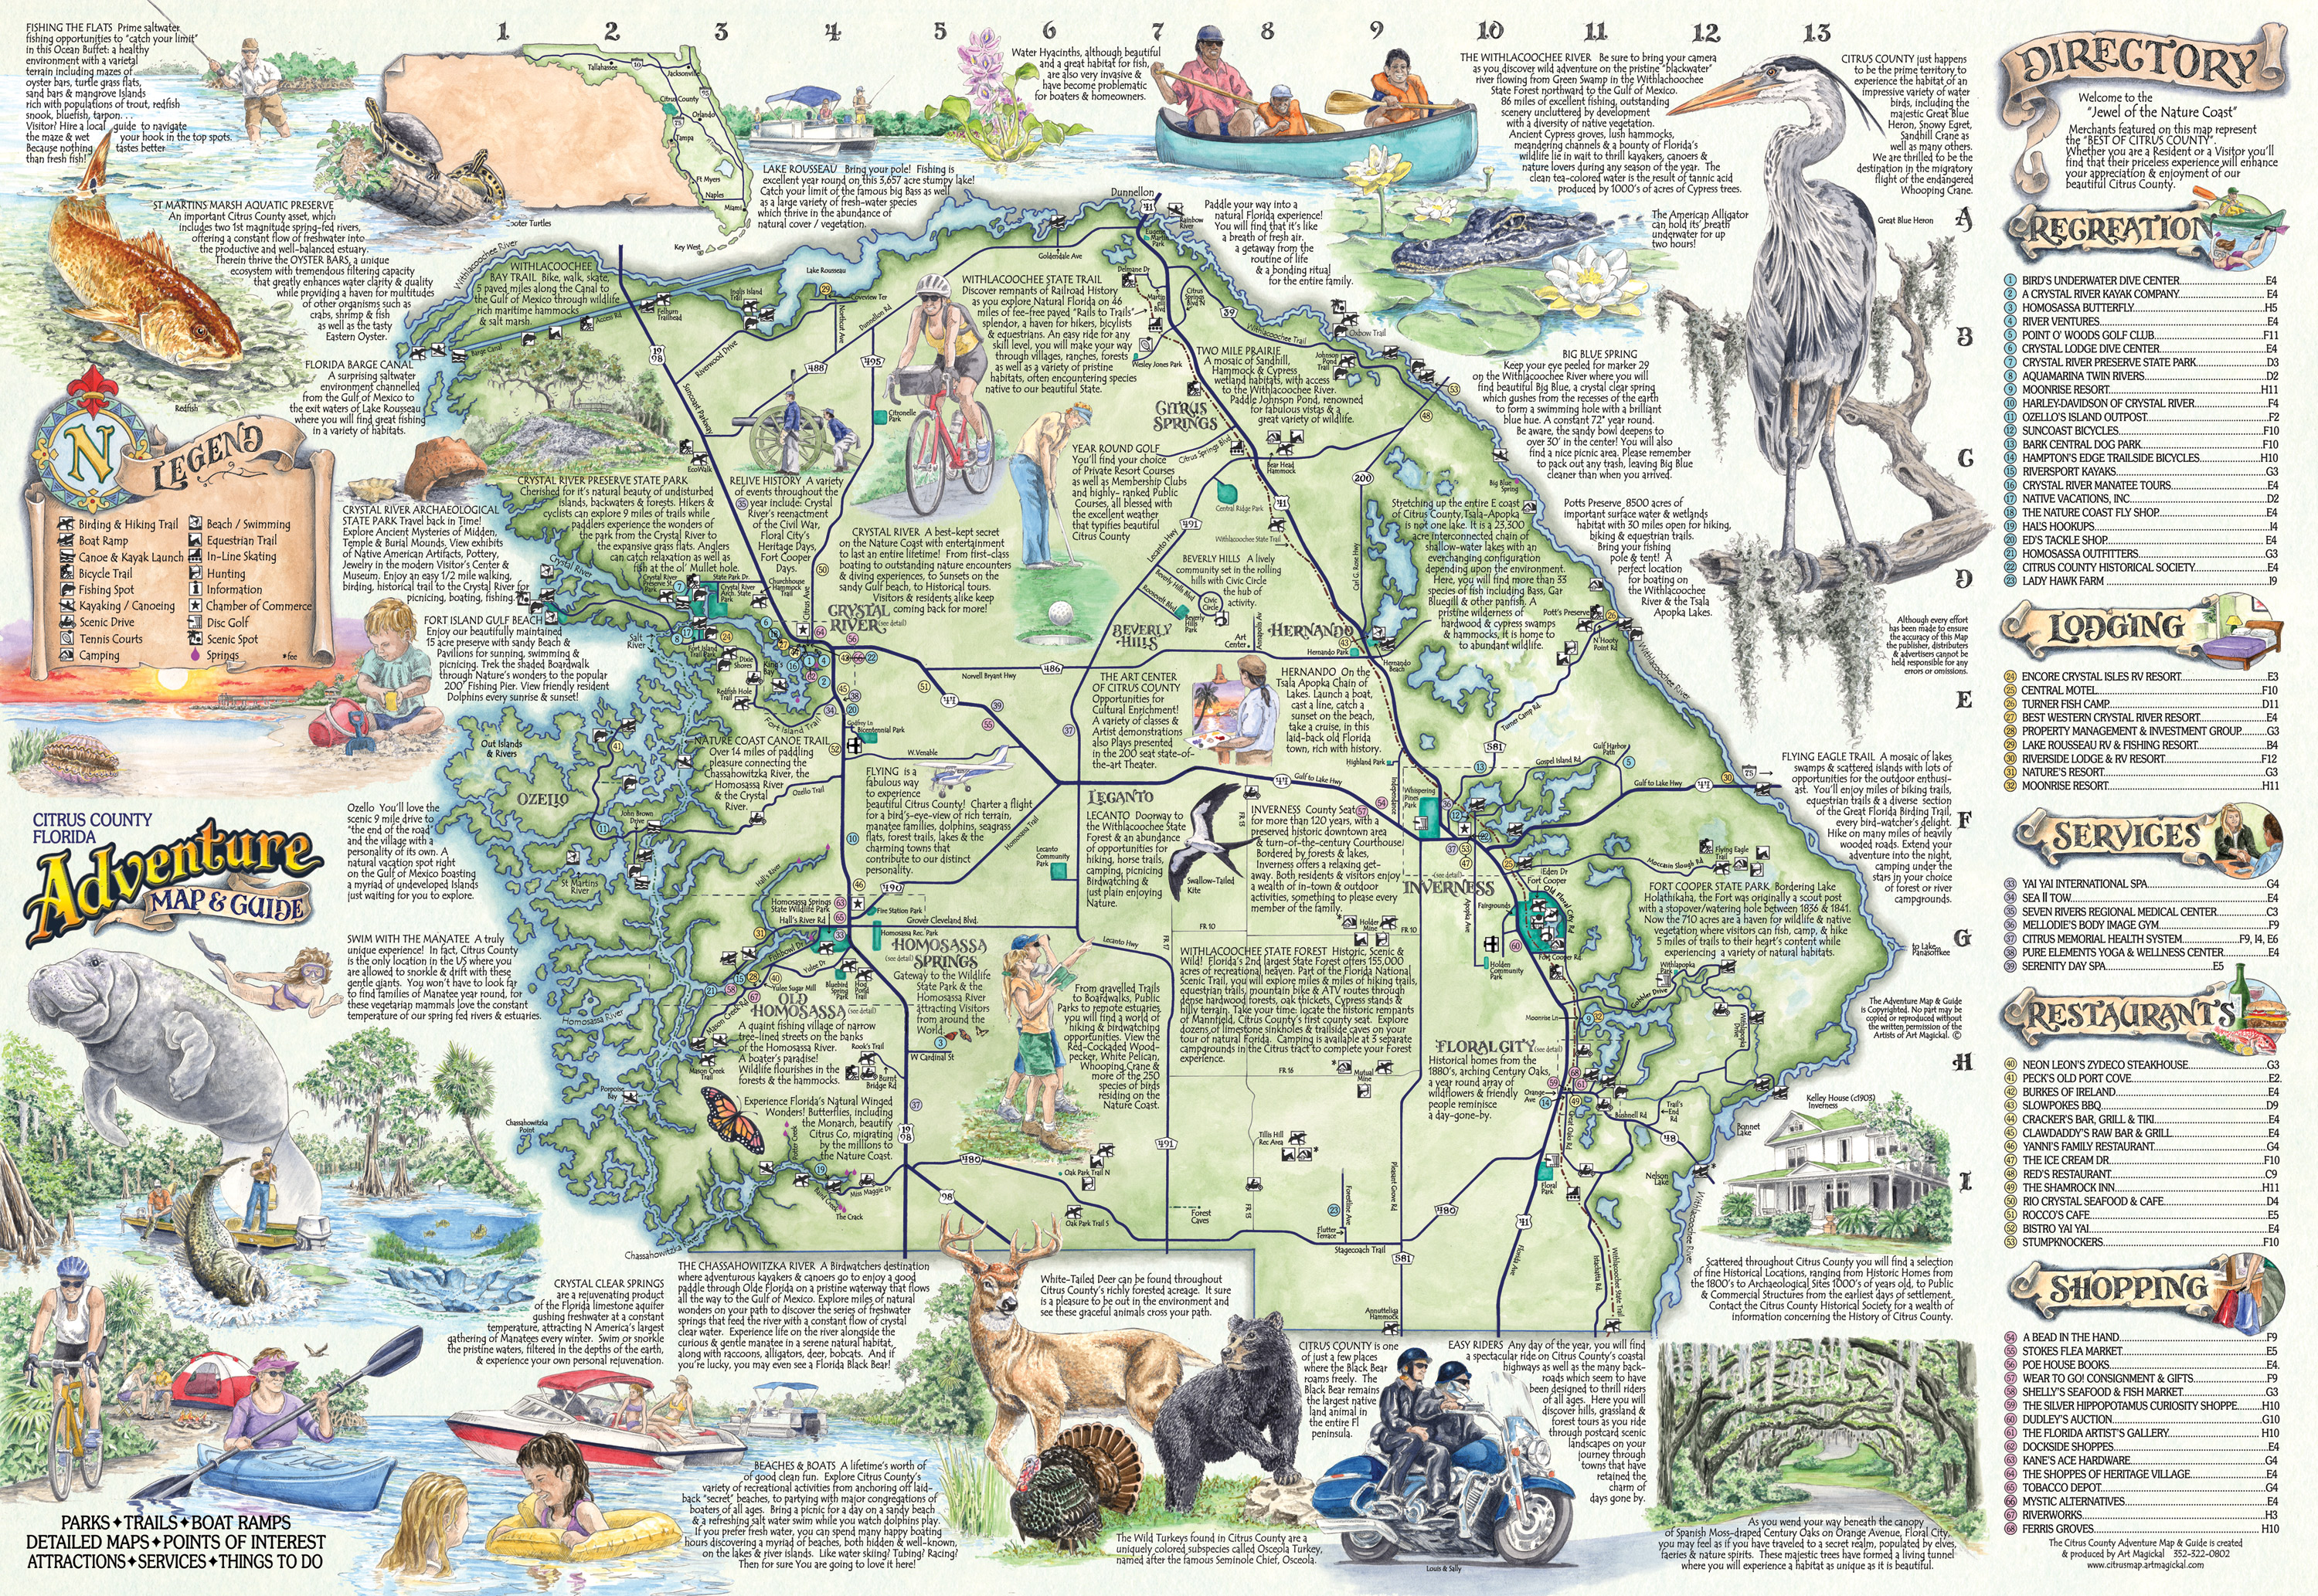 Florida Rivers Map.The Adventure Map Guide Of Citrus Co Fl